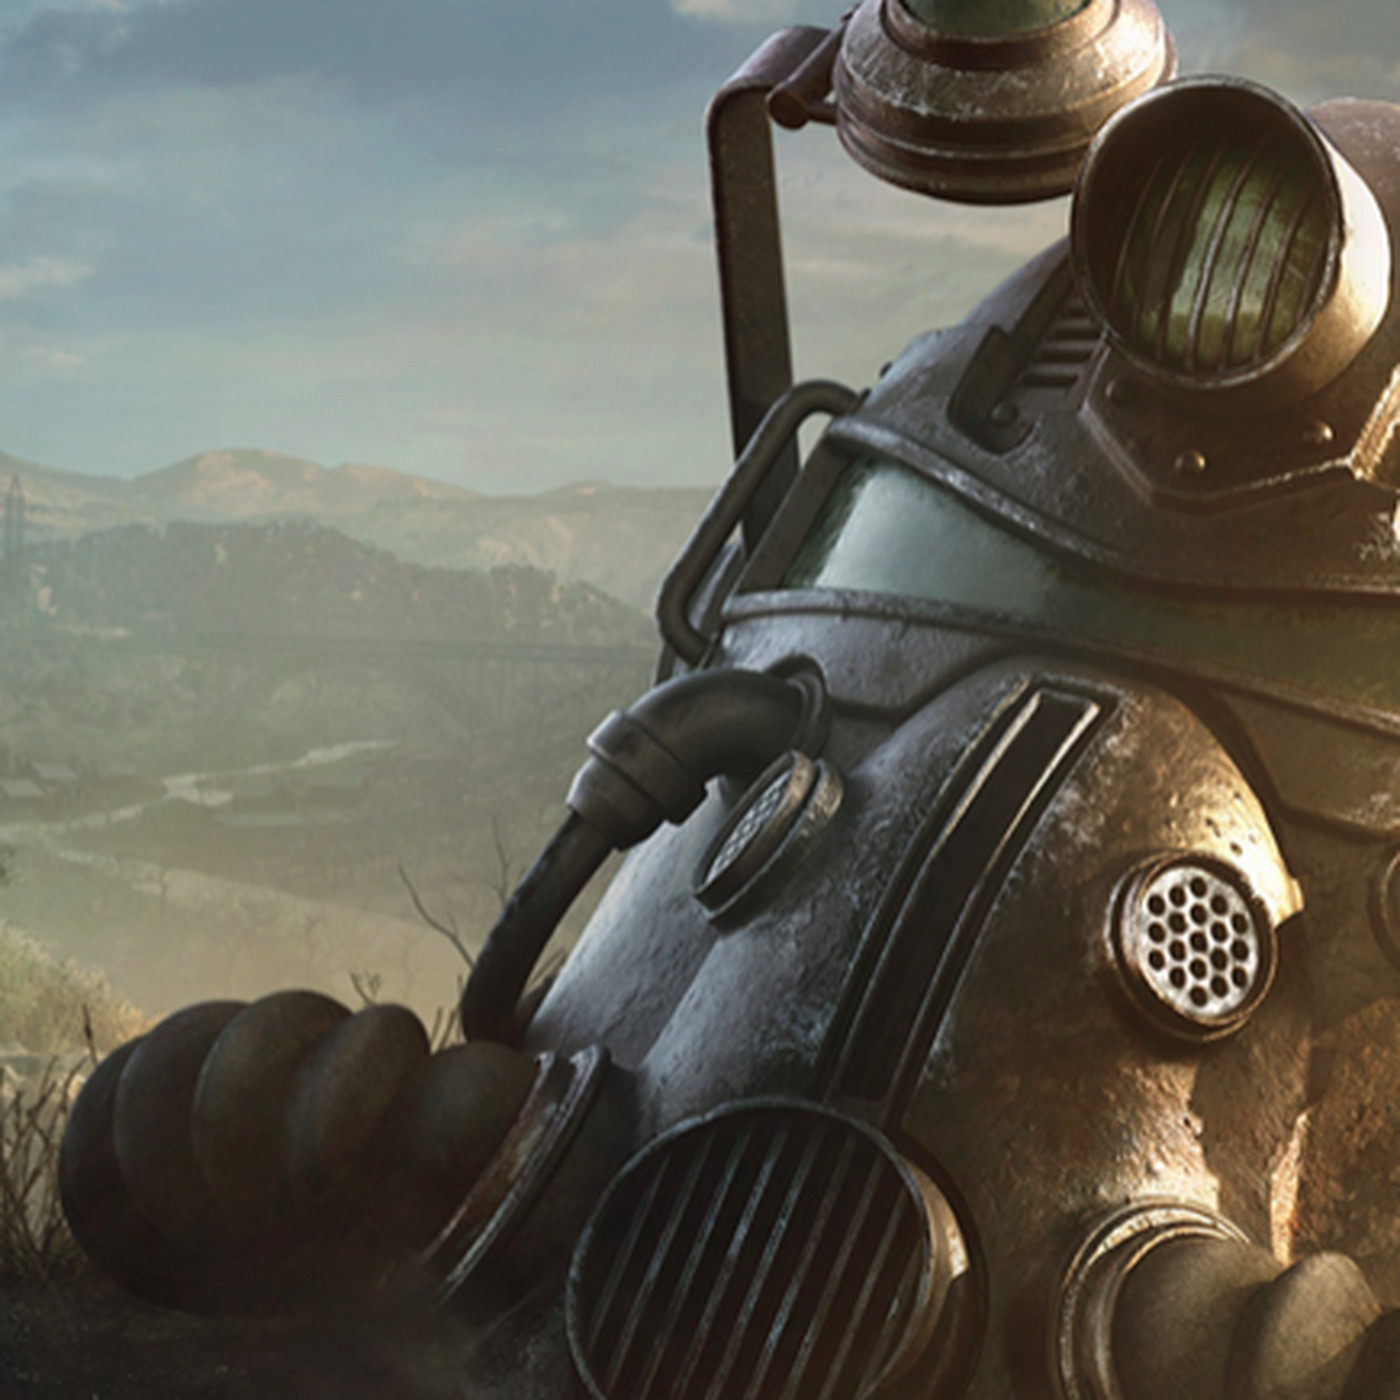 Fallout 76 will have free updates, micro transactions, and